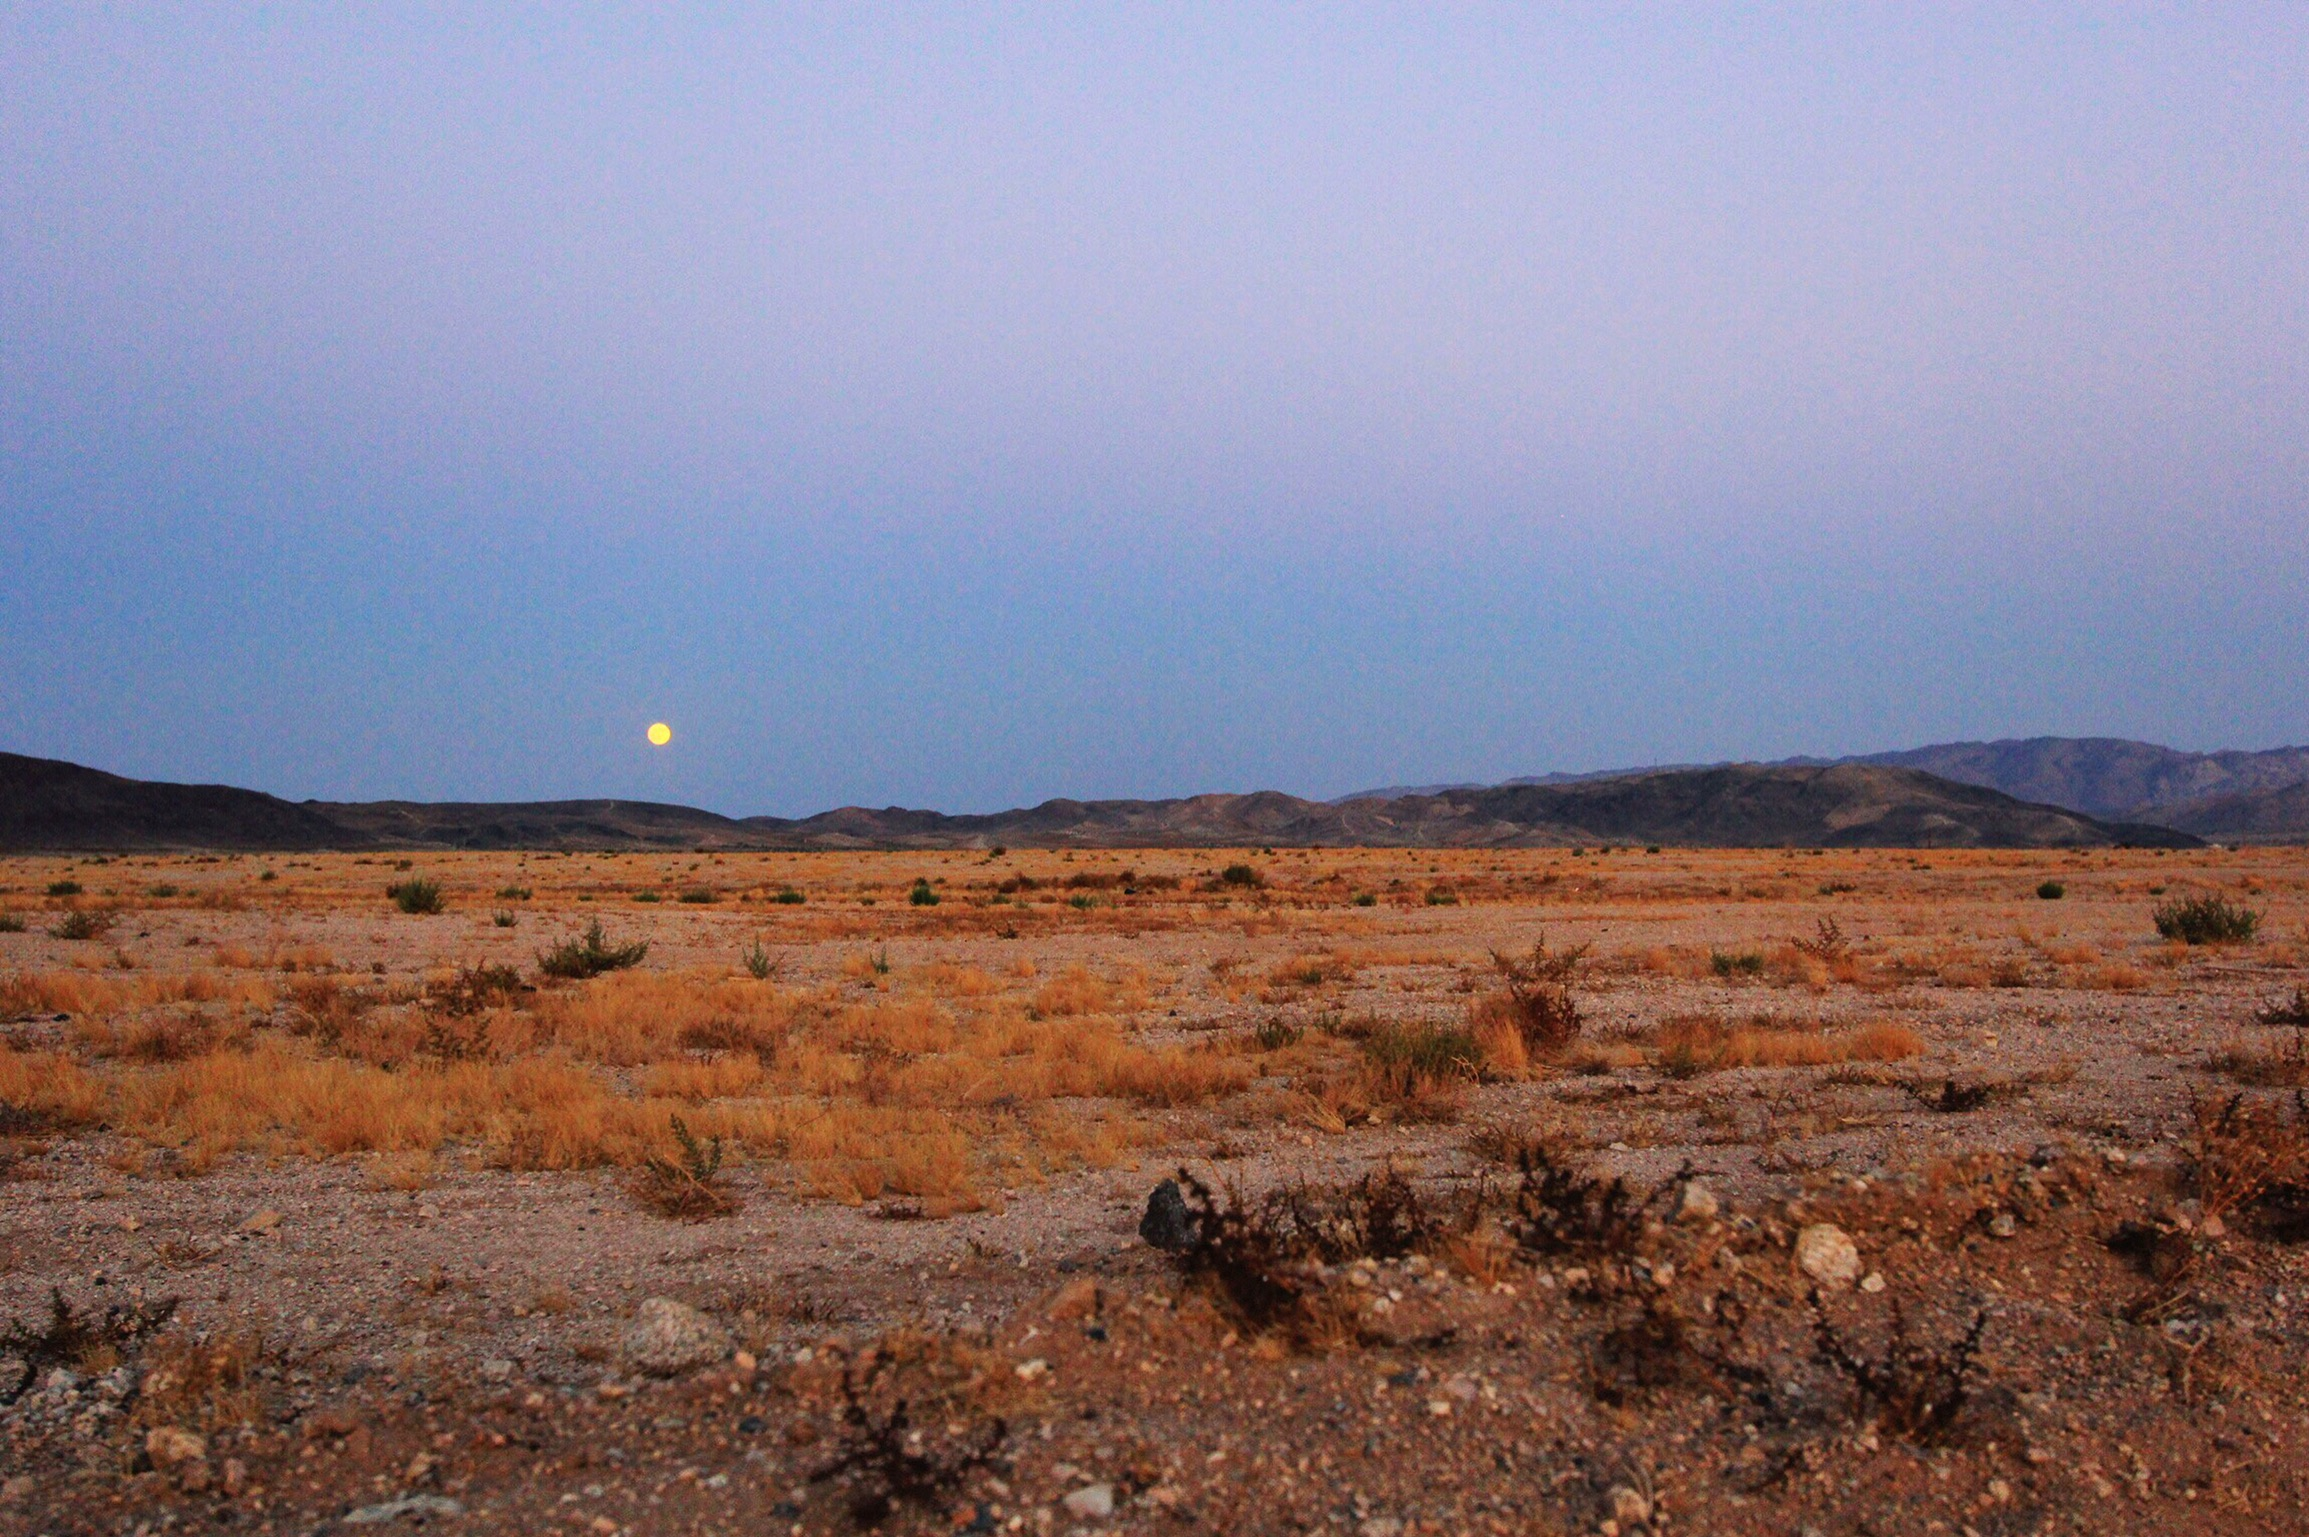 The most spectacular moon I've ever seen over the desert in Joshua Tree (the night before the Harvest Moon)